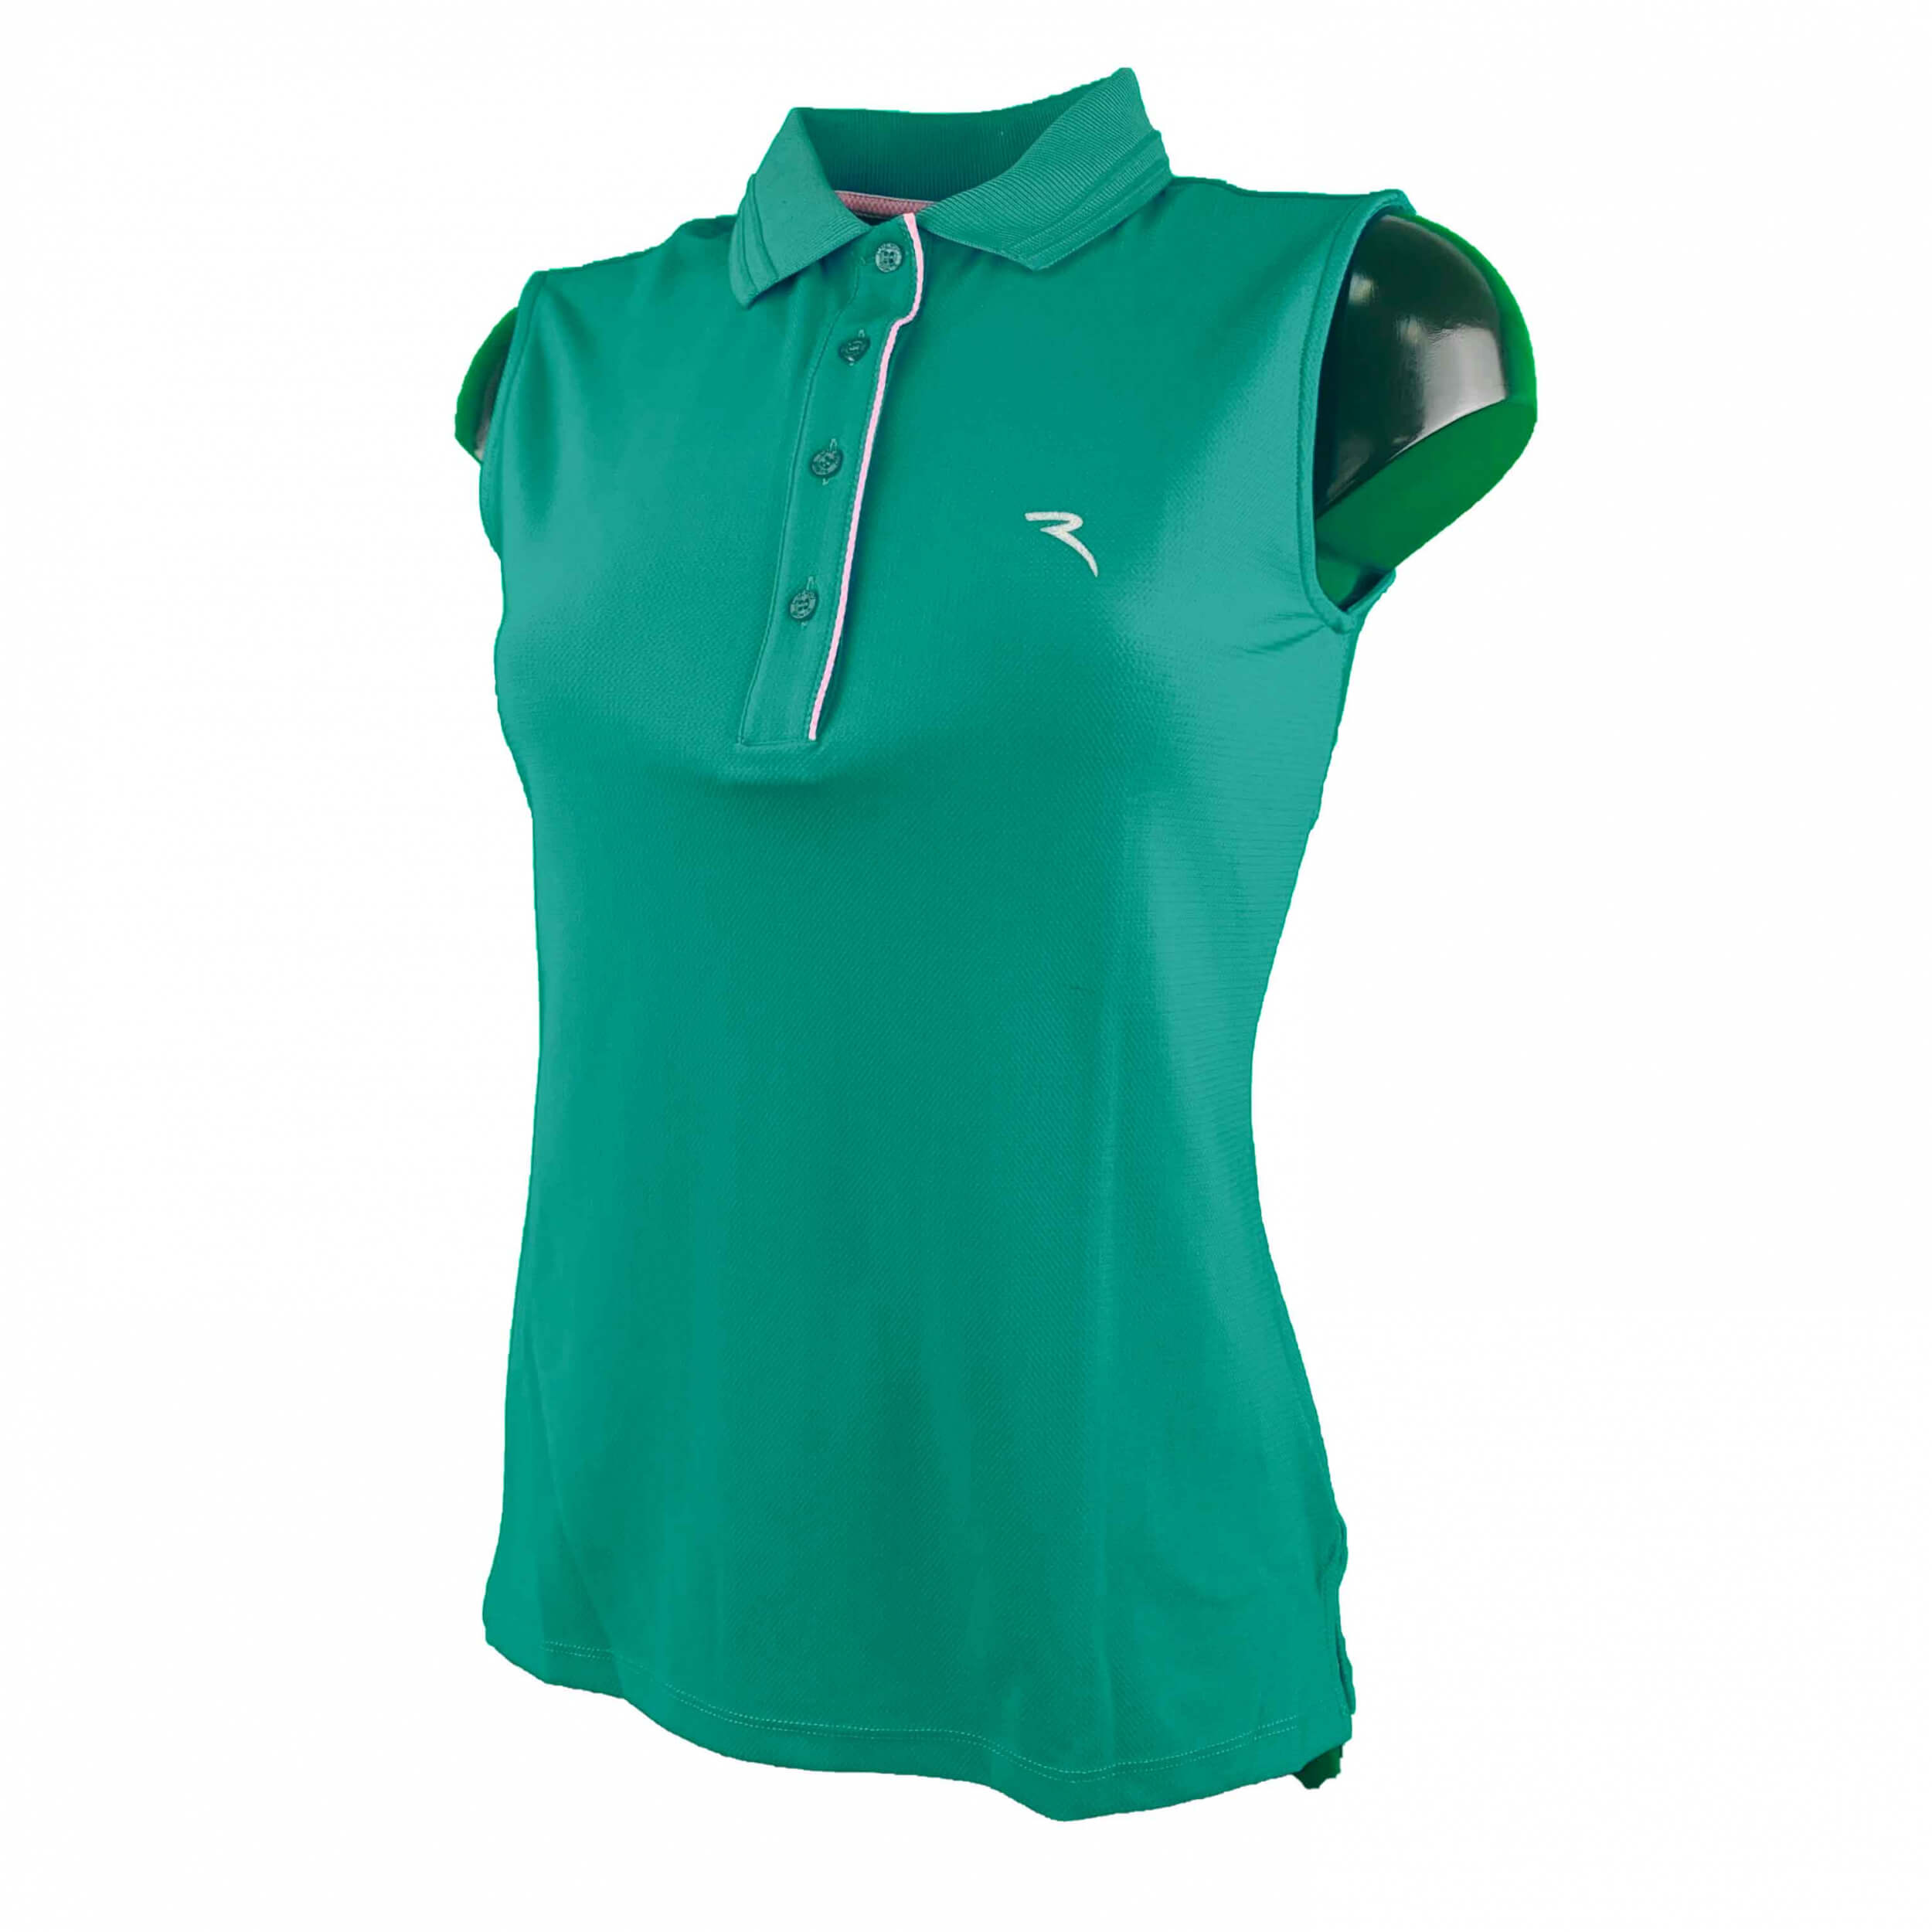 Chervo Damen Polo Top Allevi DRY MATIC petrol 672